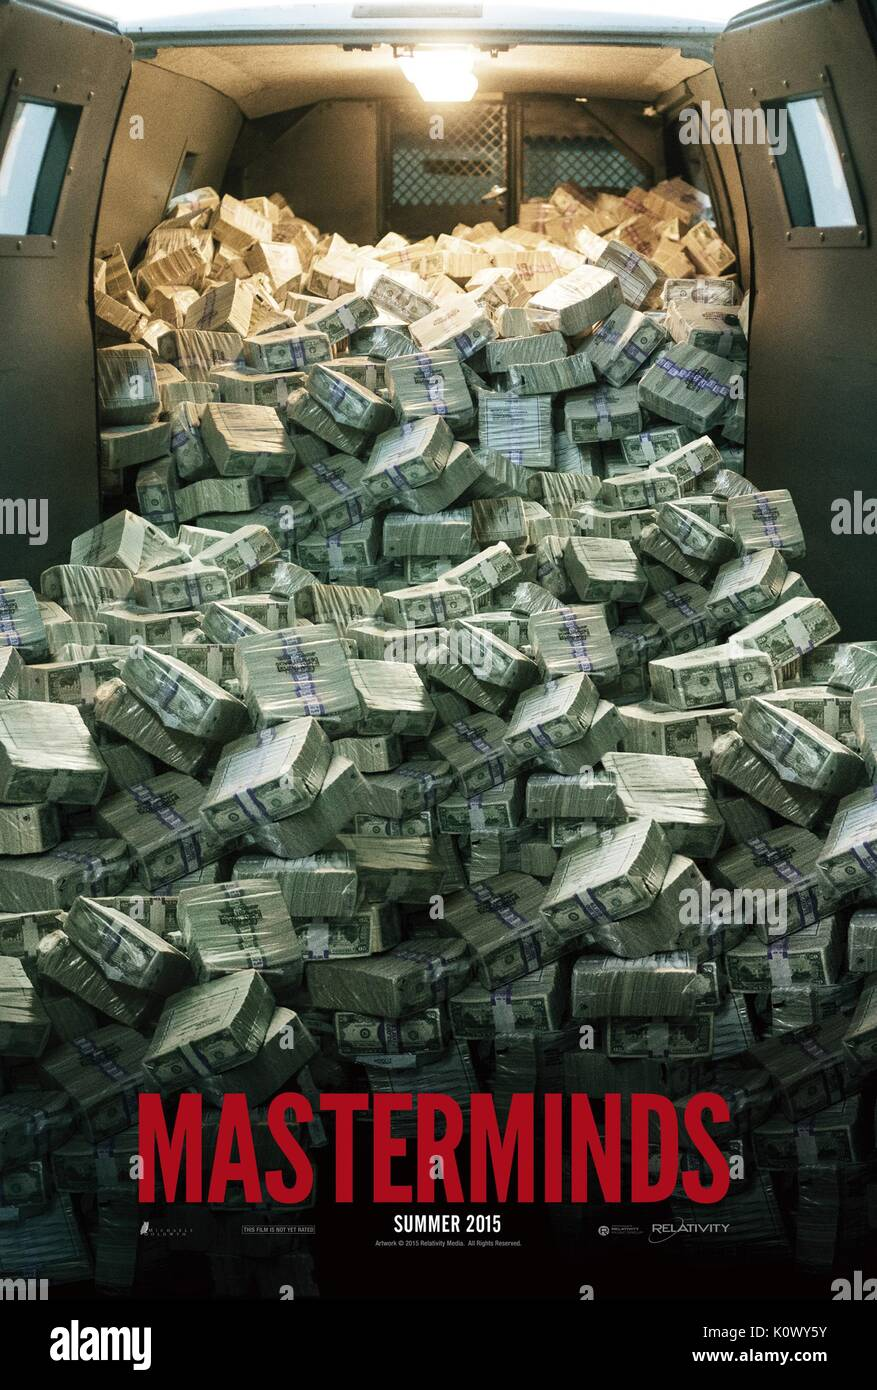 MOVIE POSTER MASTERMINDS (2015) - Stock Image